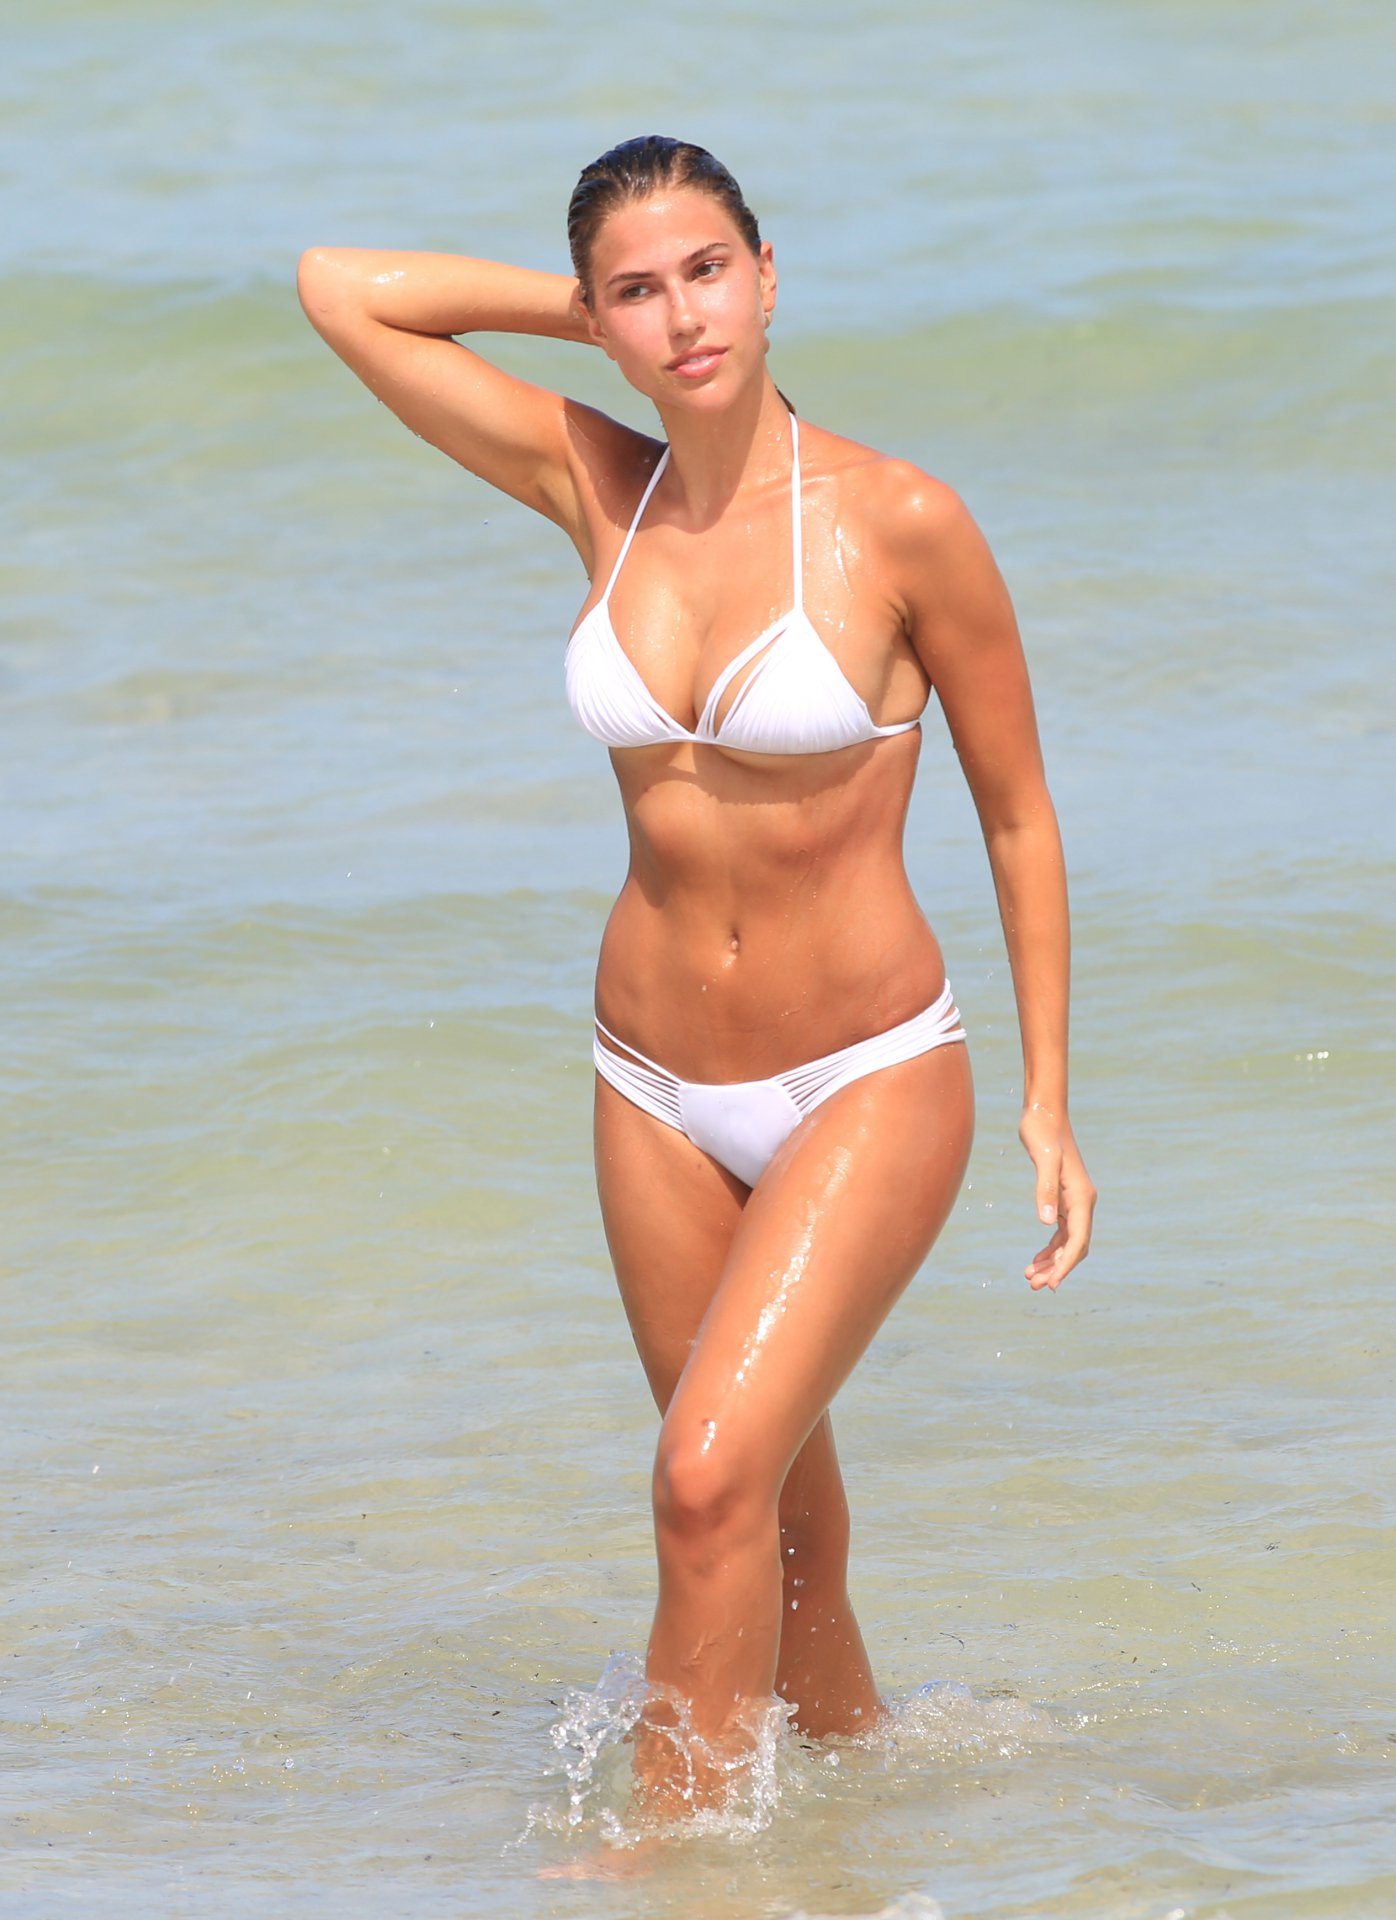 Kara Del Toro in Bikini Hot Photos  Pic 3 of 35